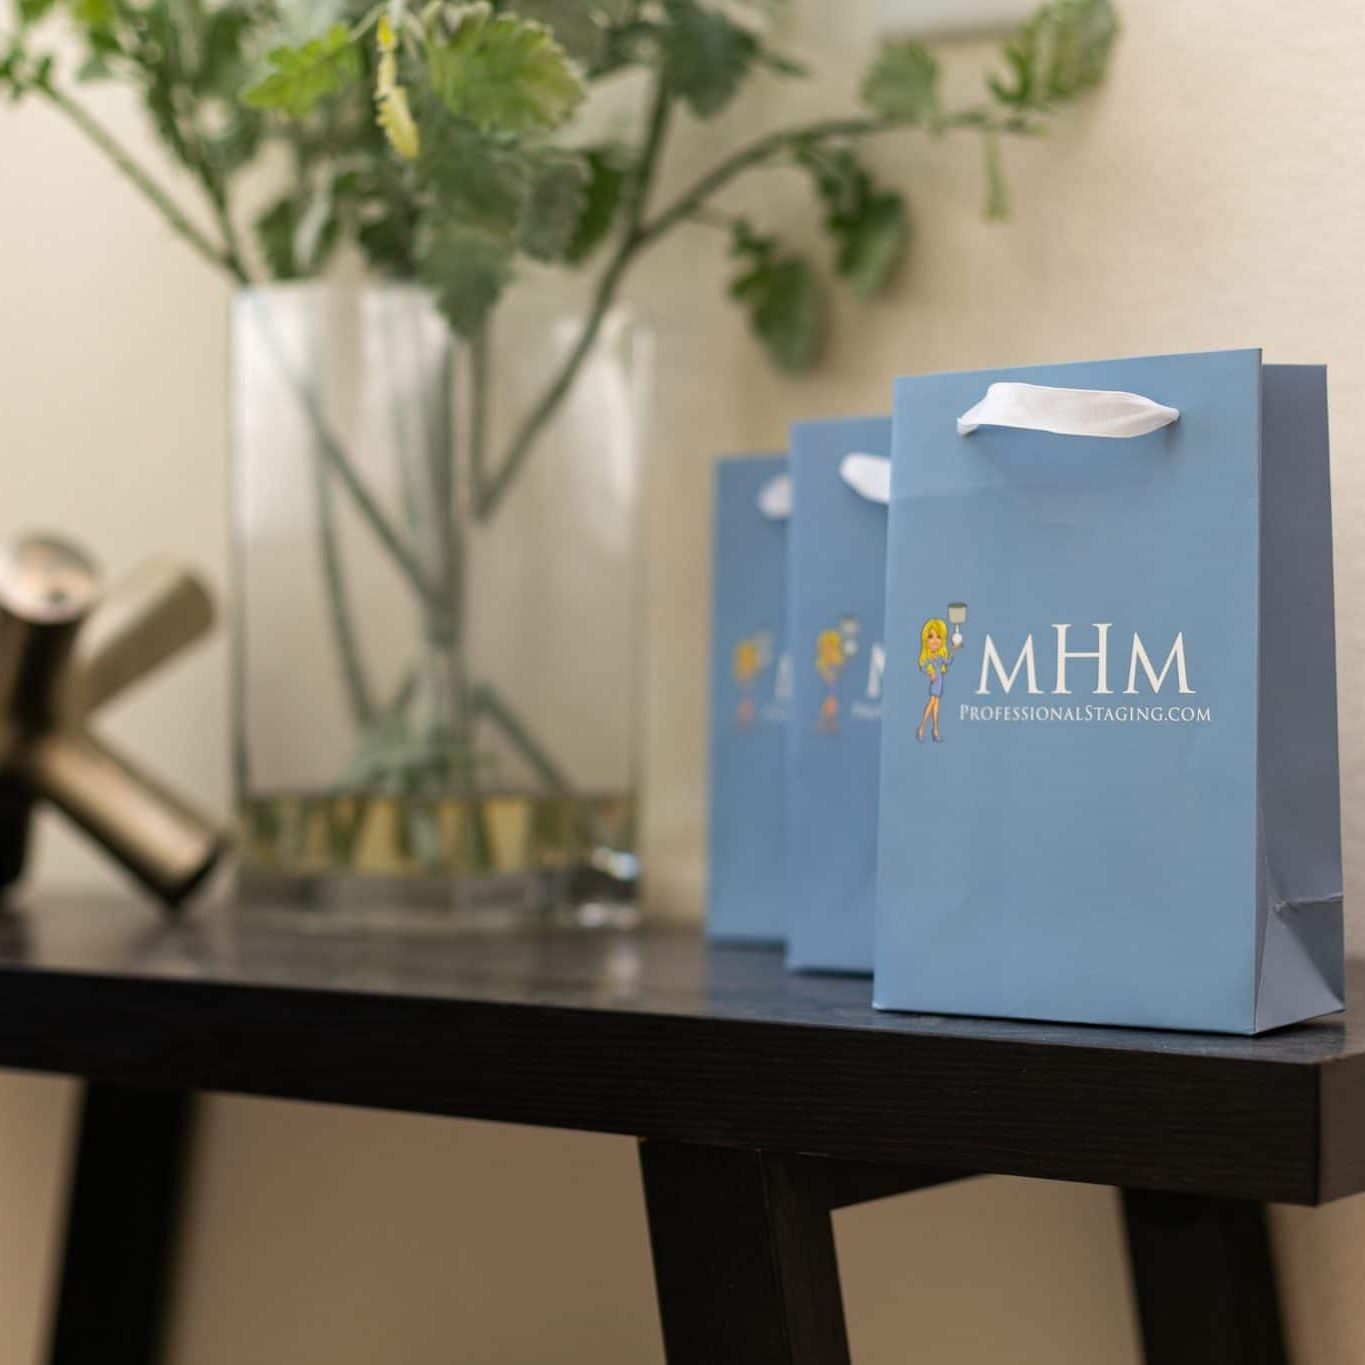 MHM Professional Staging gift bags